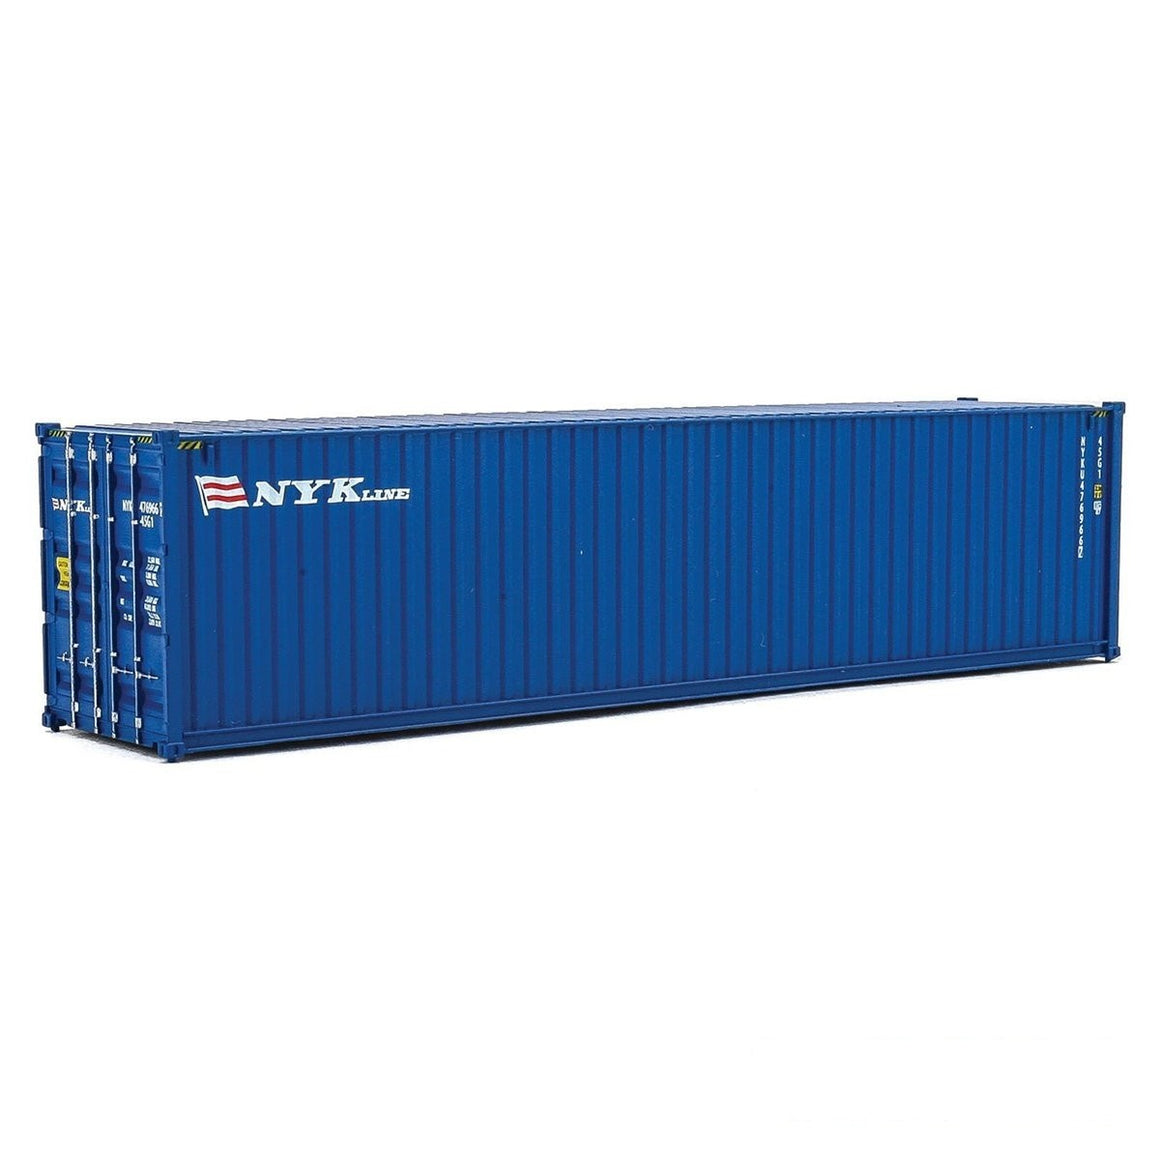 HO Scale: 40' Hi Cube Corrugated Container - NYK Lines